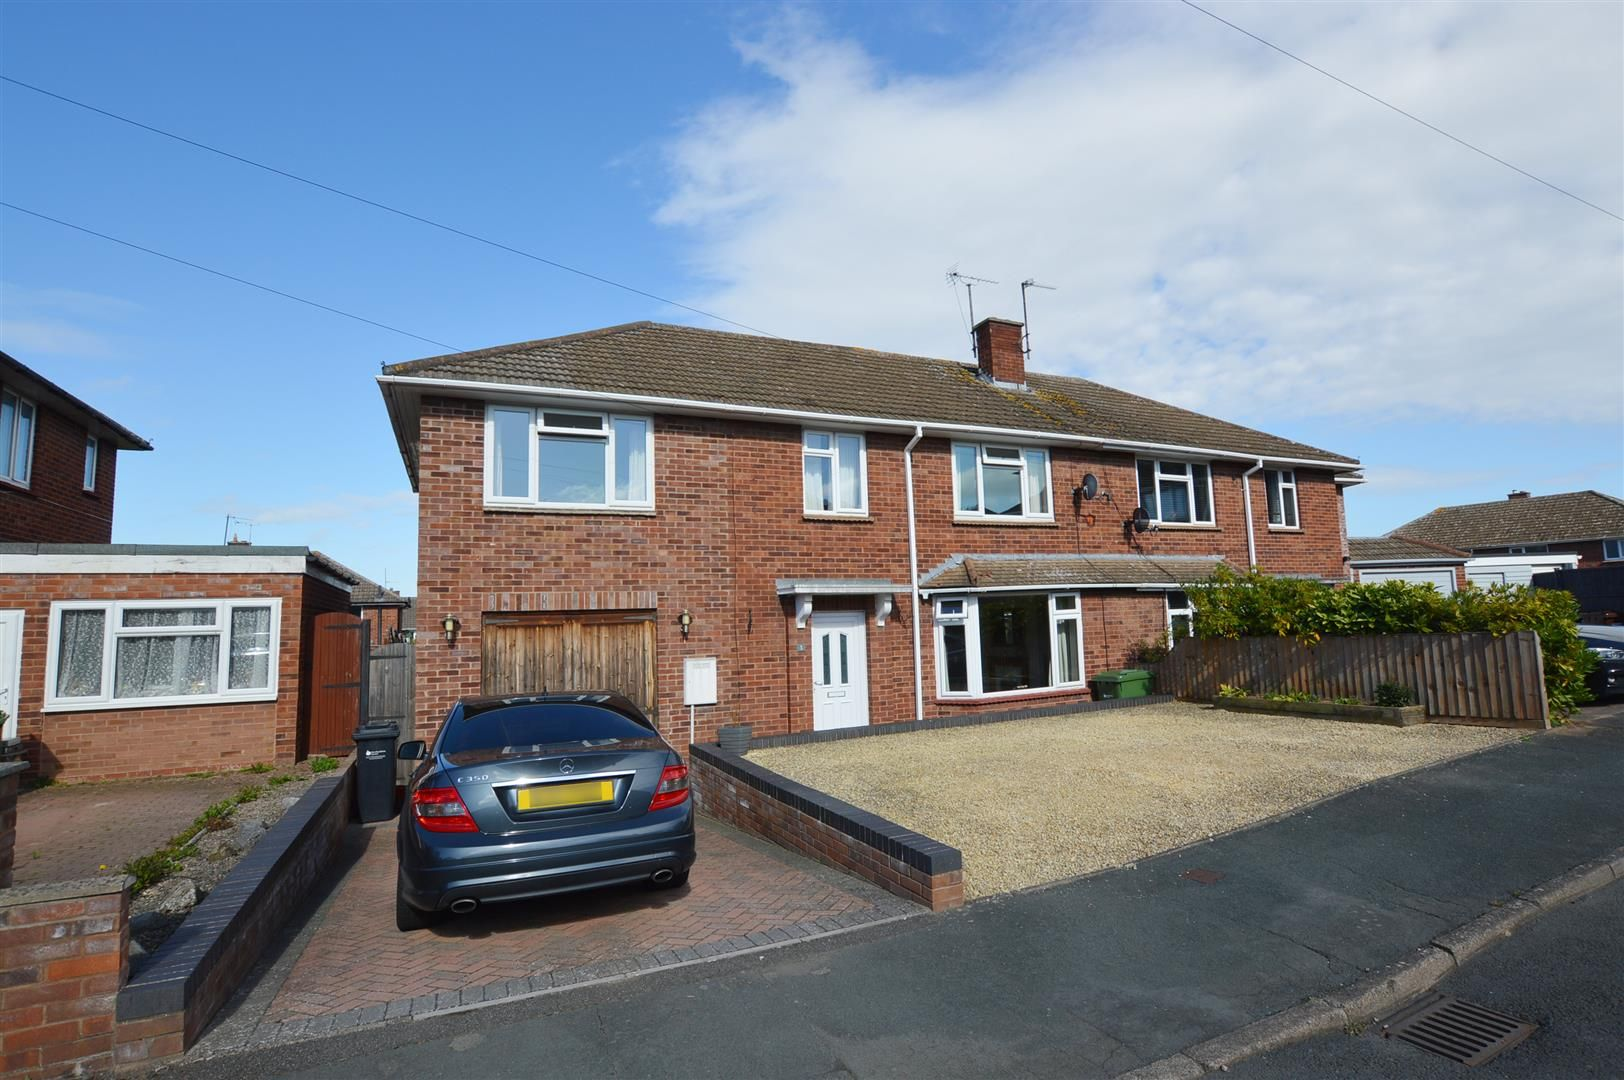 4 bed semi-detached for sale in Hereford, HR4